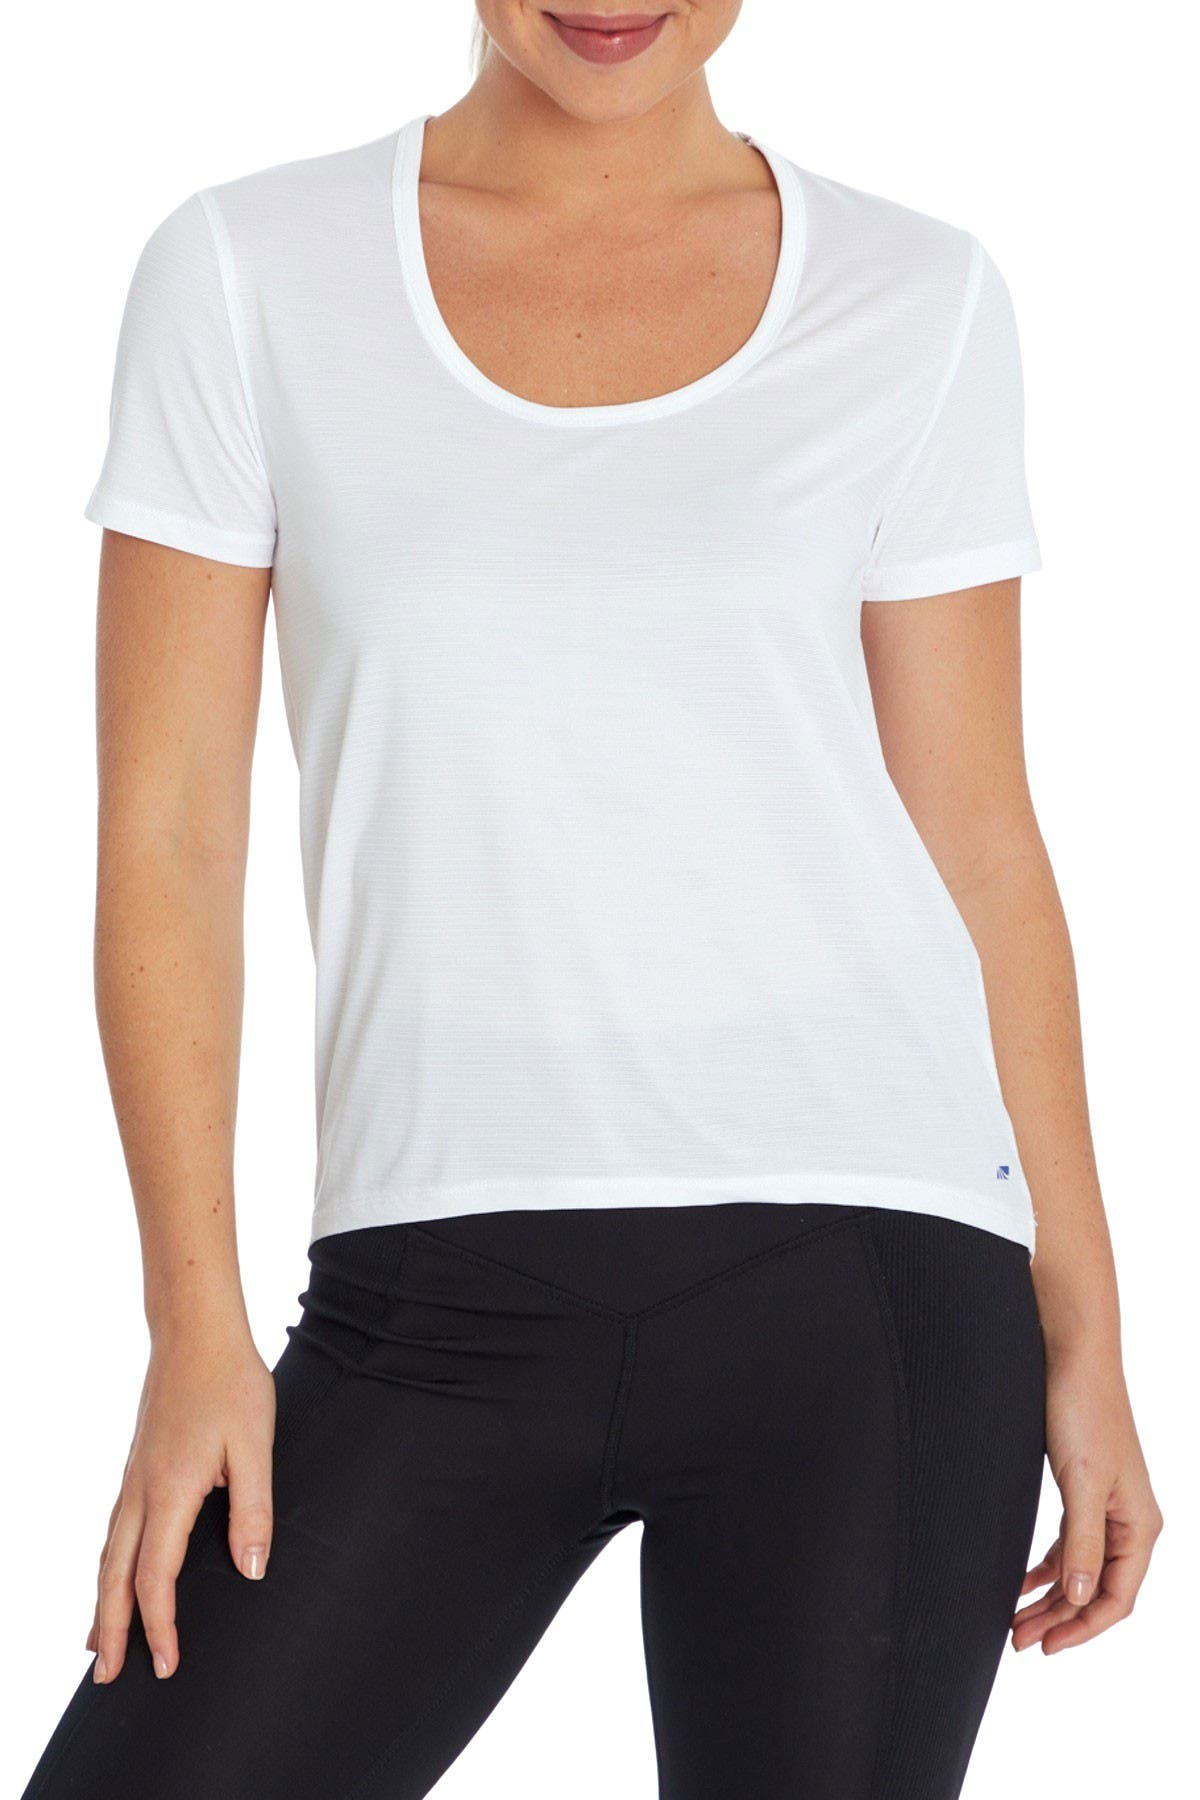 Image of CYCLE HOUSE Dynamic Short Sleeve T-Shirt